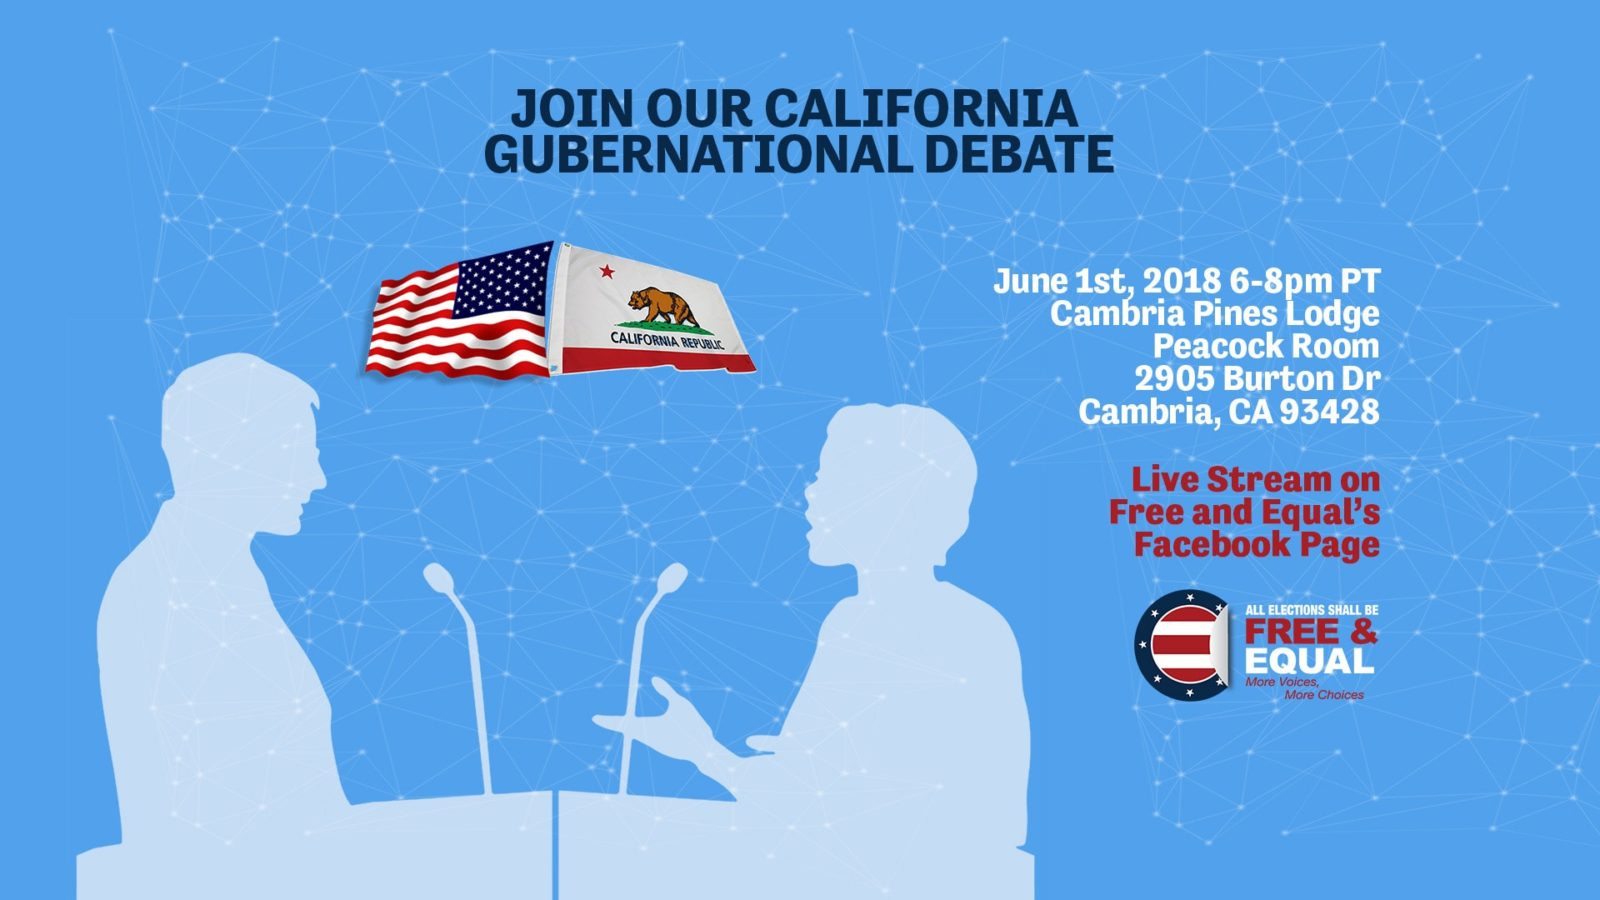 Join Free and Equal's California Gubernational Debate